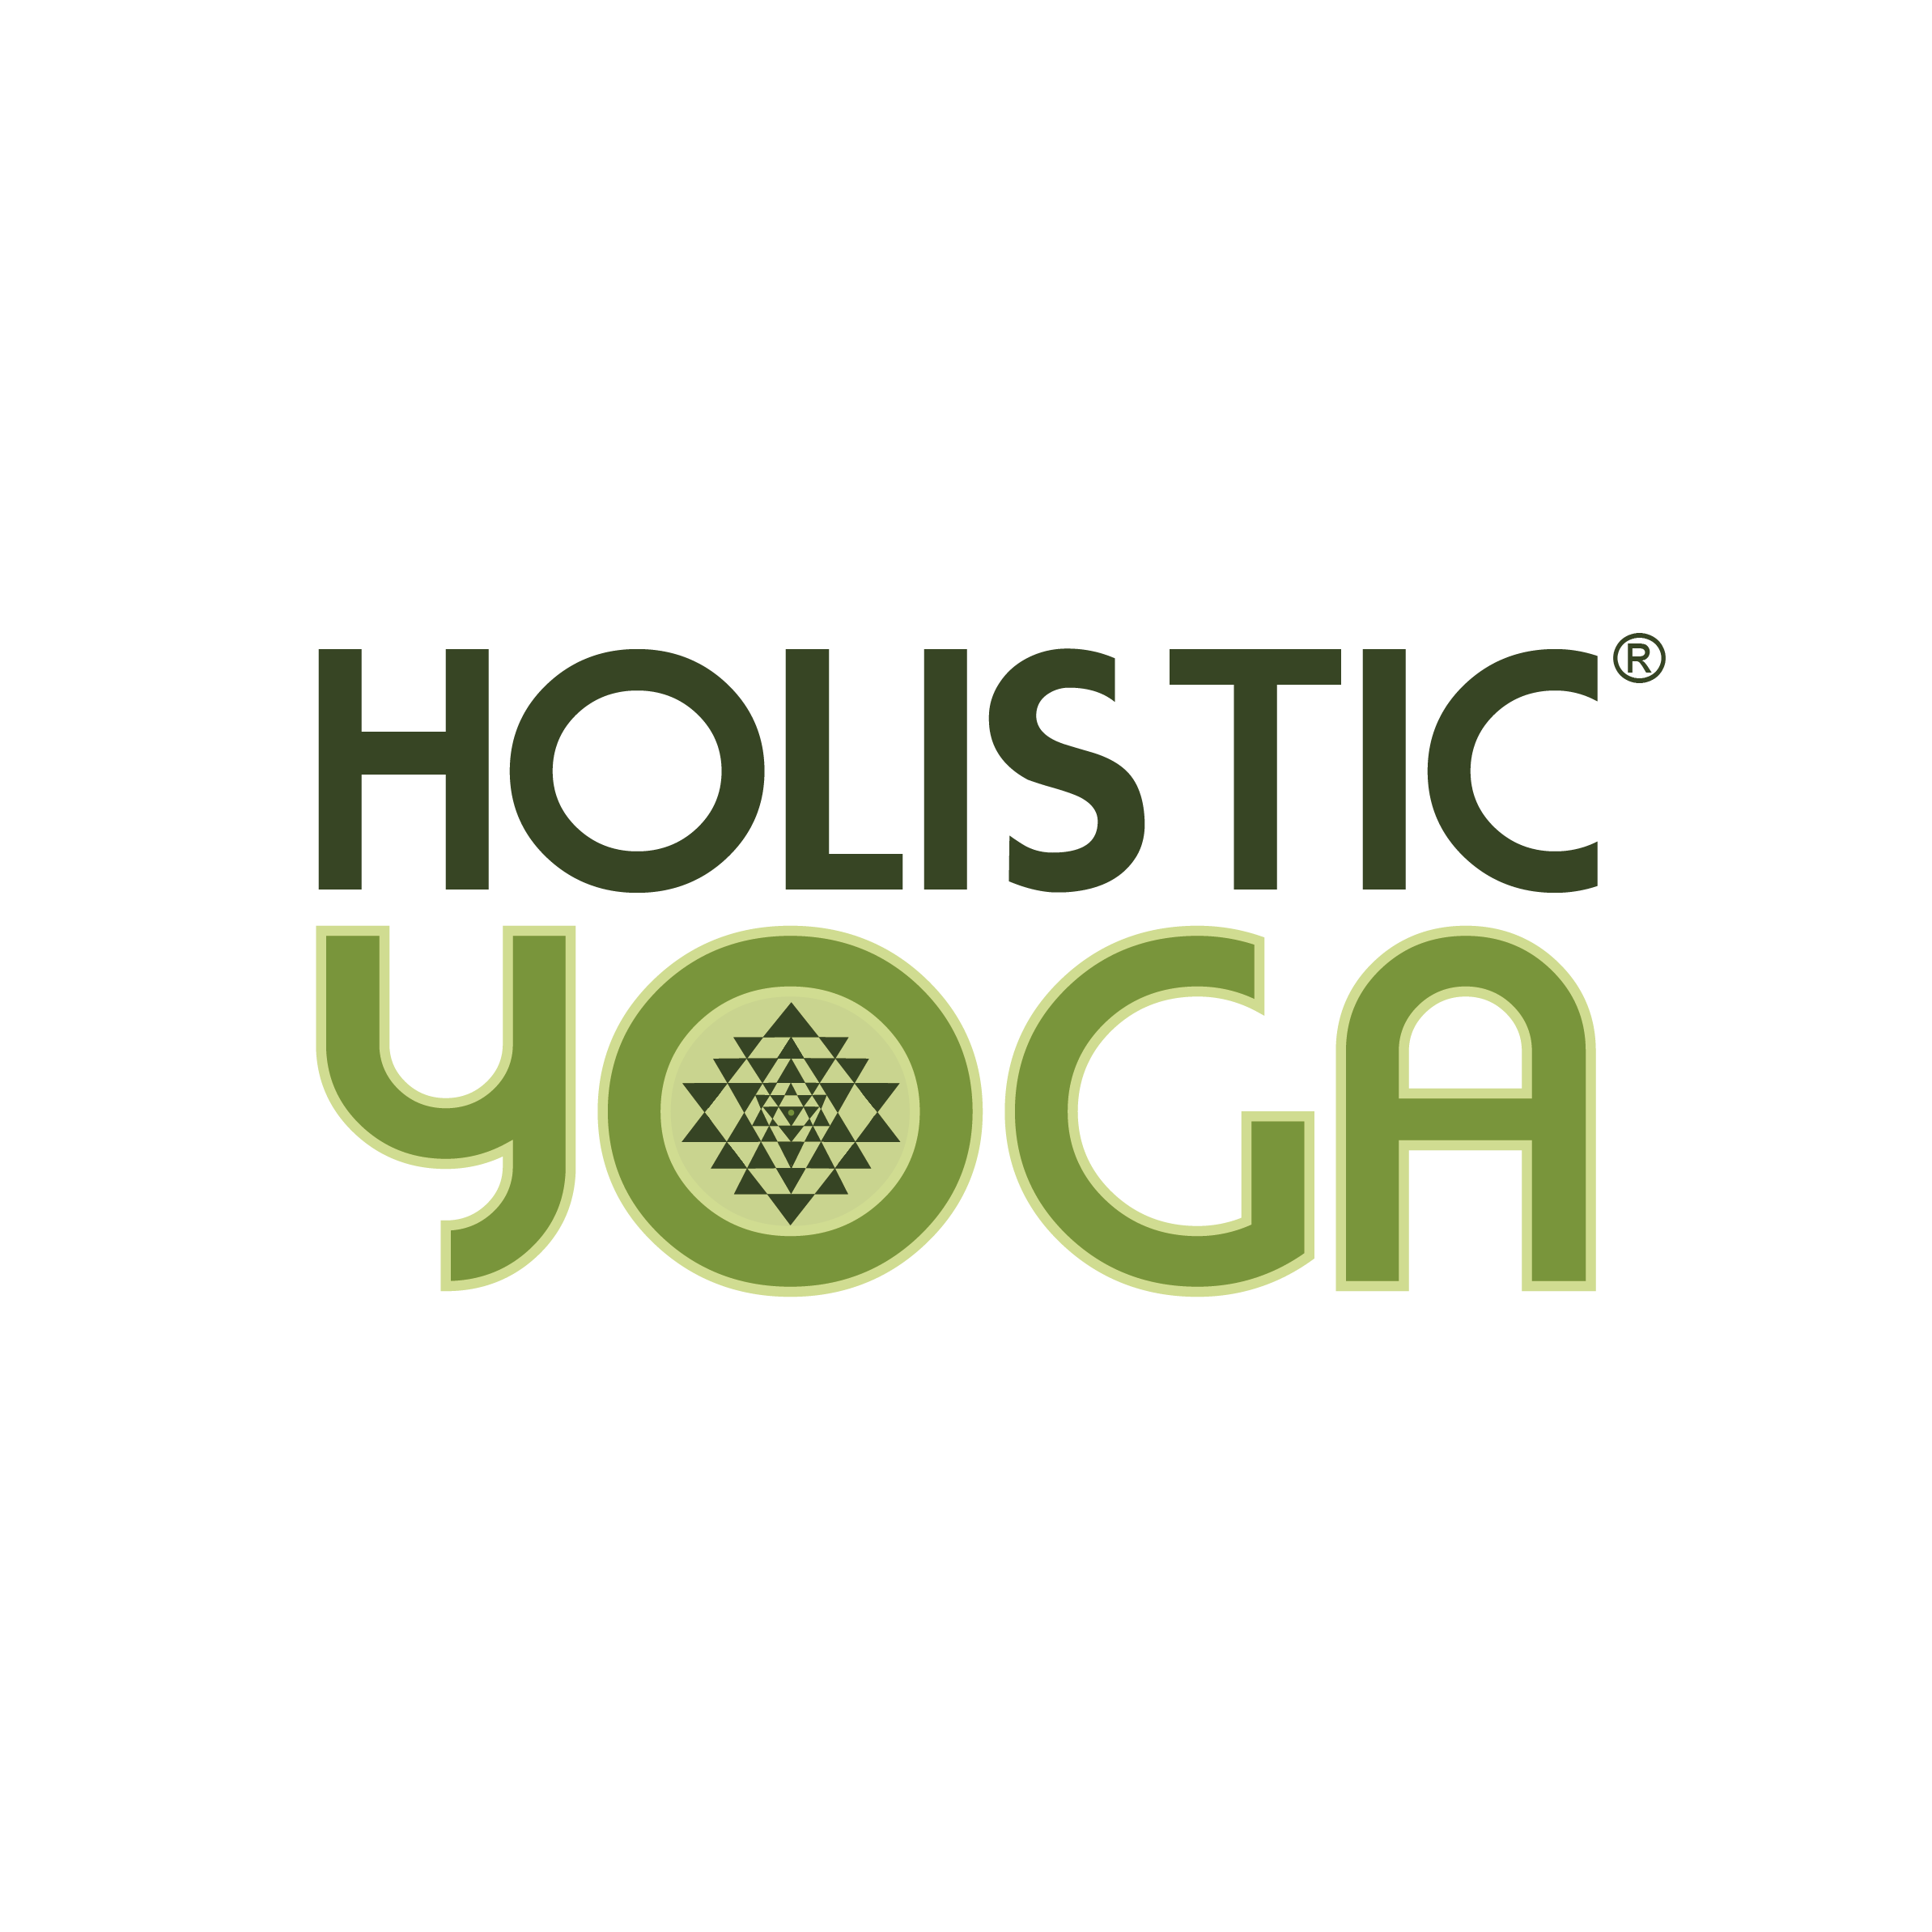 9 Holistic Yoga